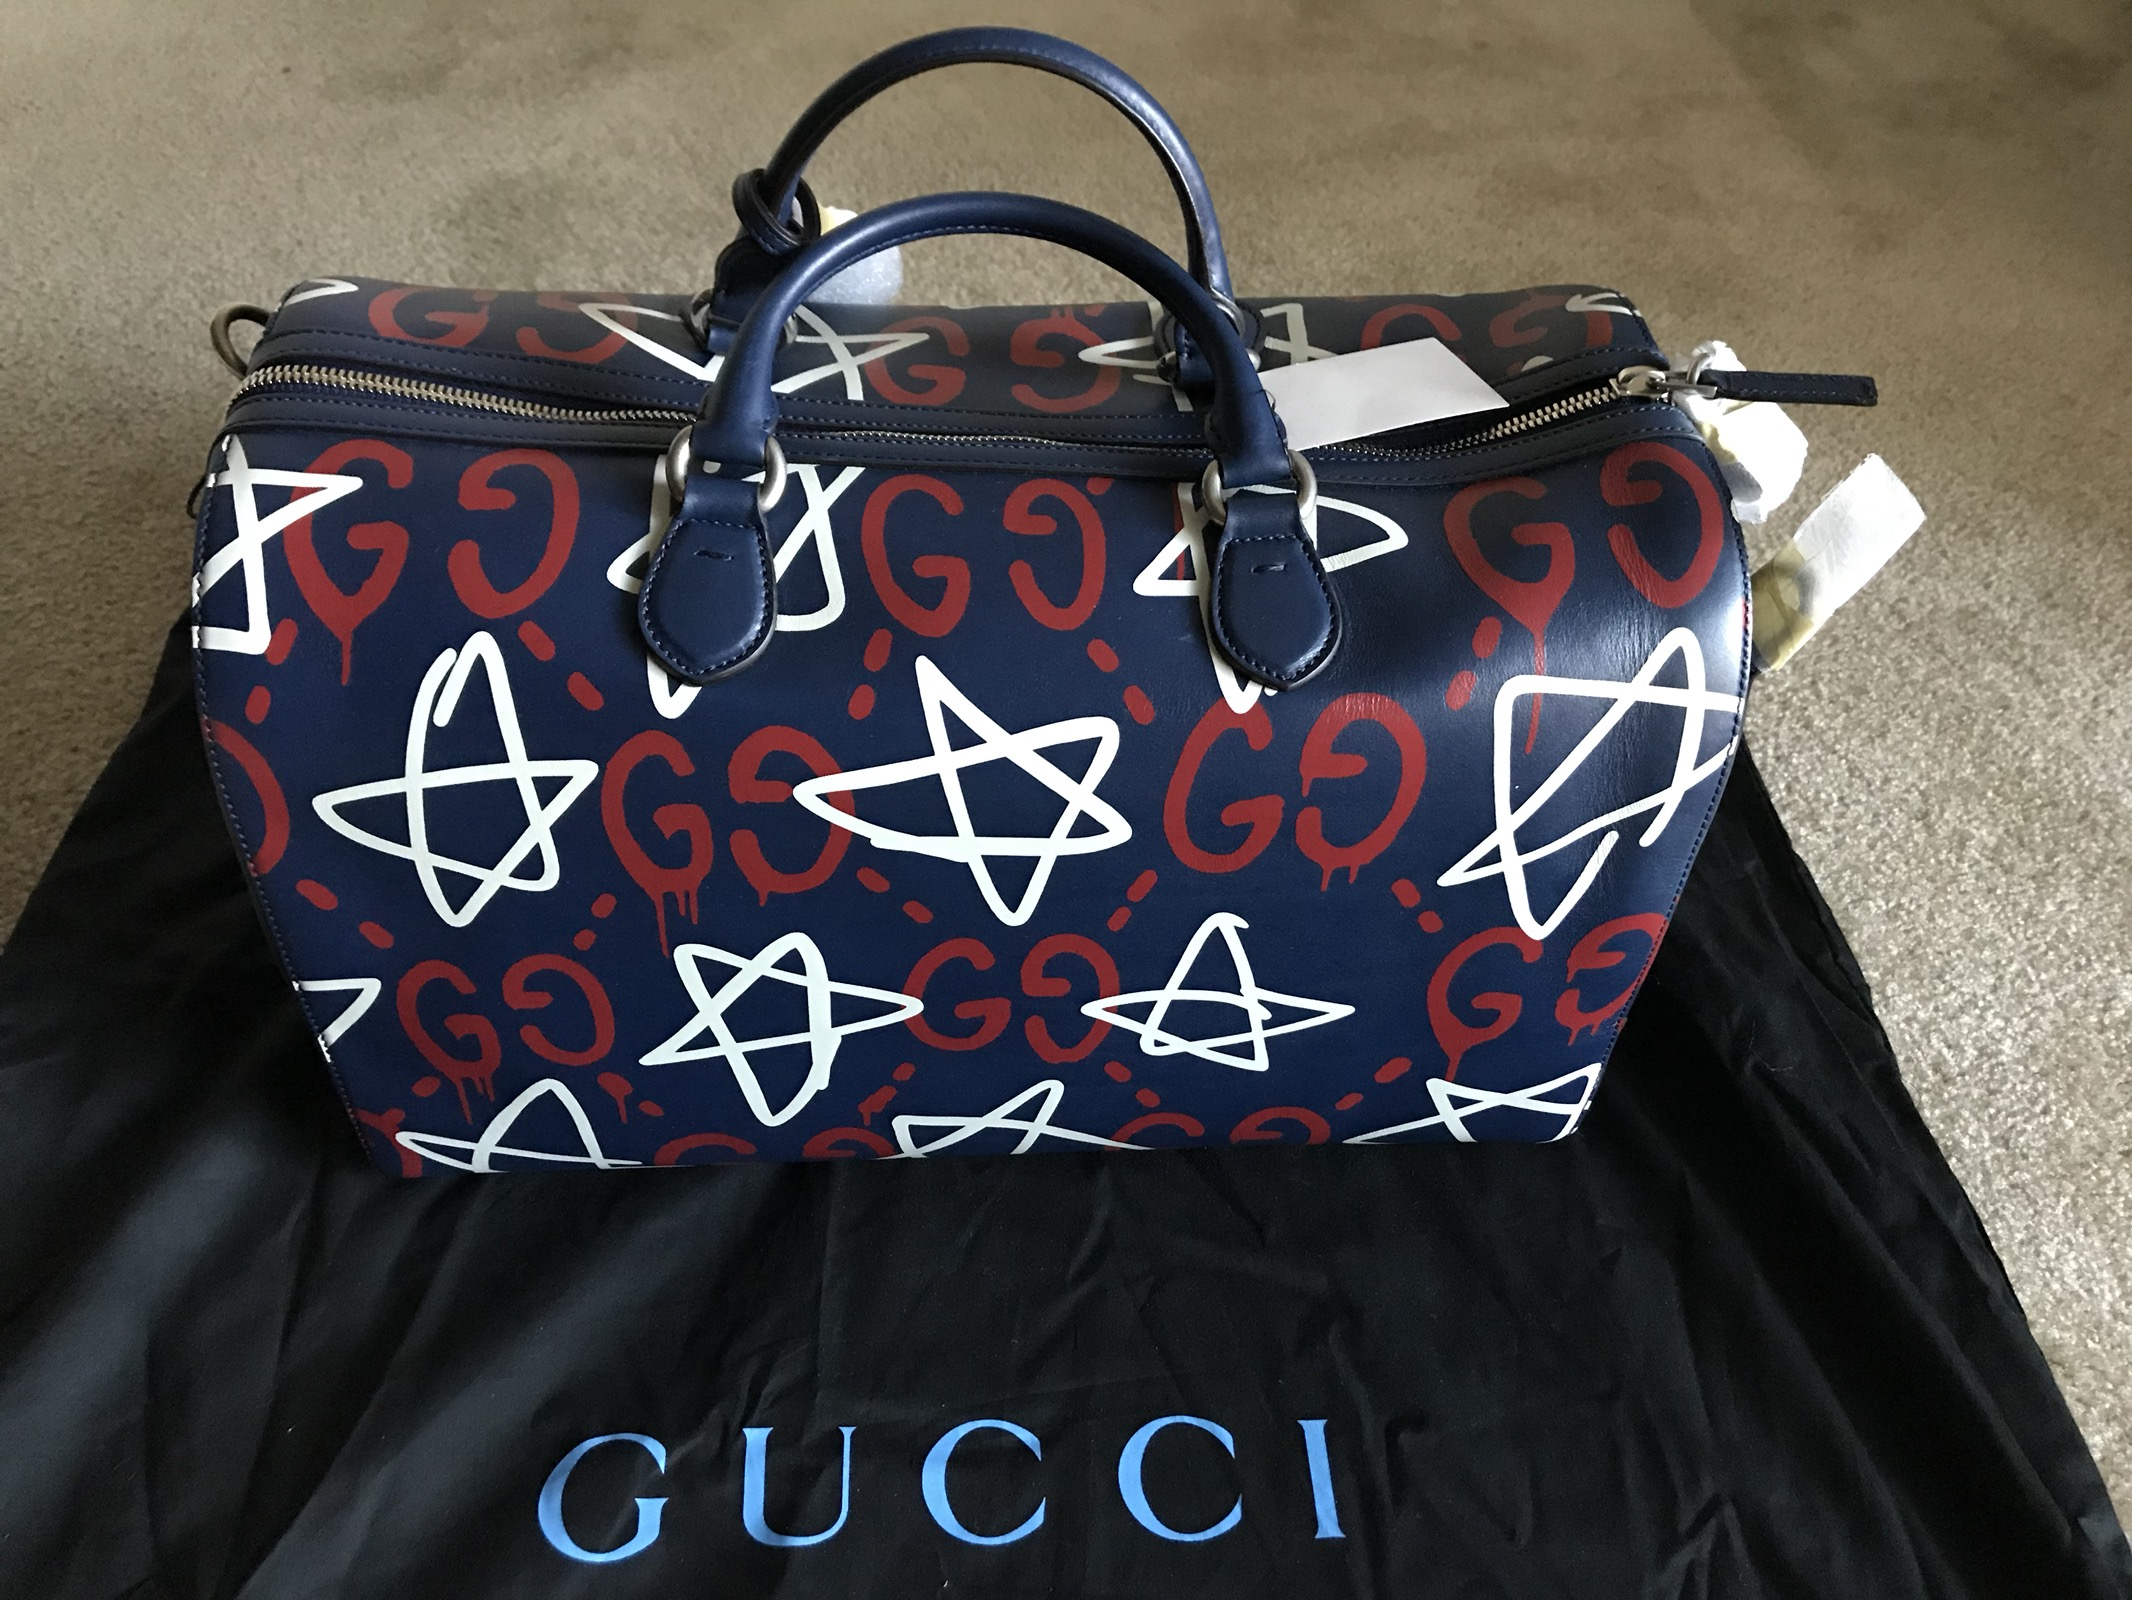 09c670b1516947 Gucci GucciGhost duffle Size one size - Bags & Luggage for Sale - Grailed